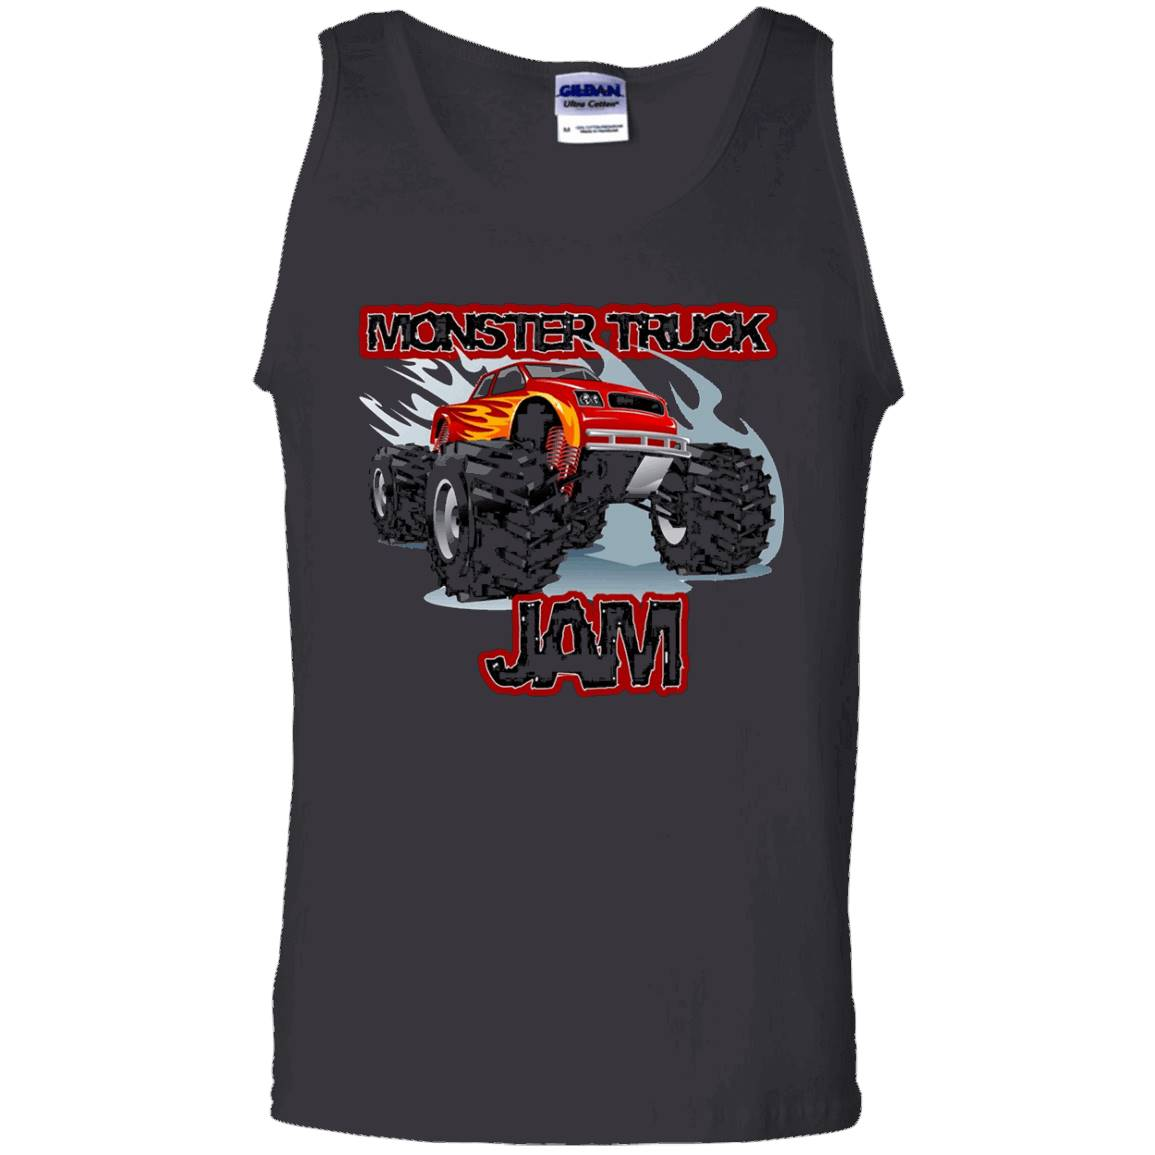 Monster Truck Jam T-Shirt for boys – Tank Top